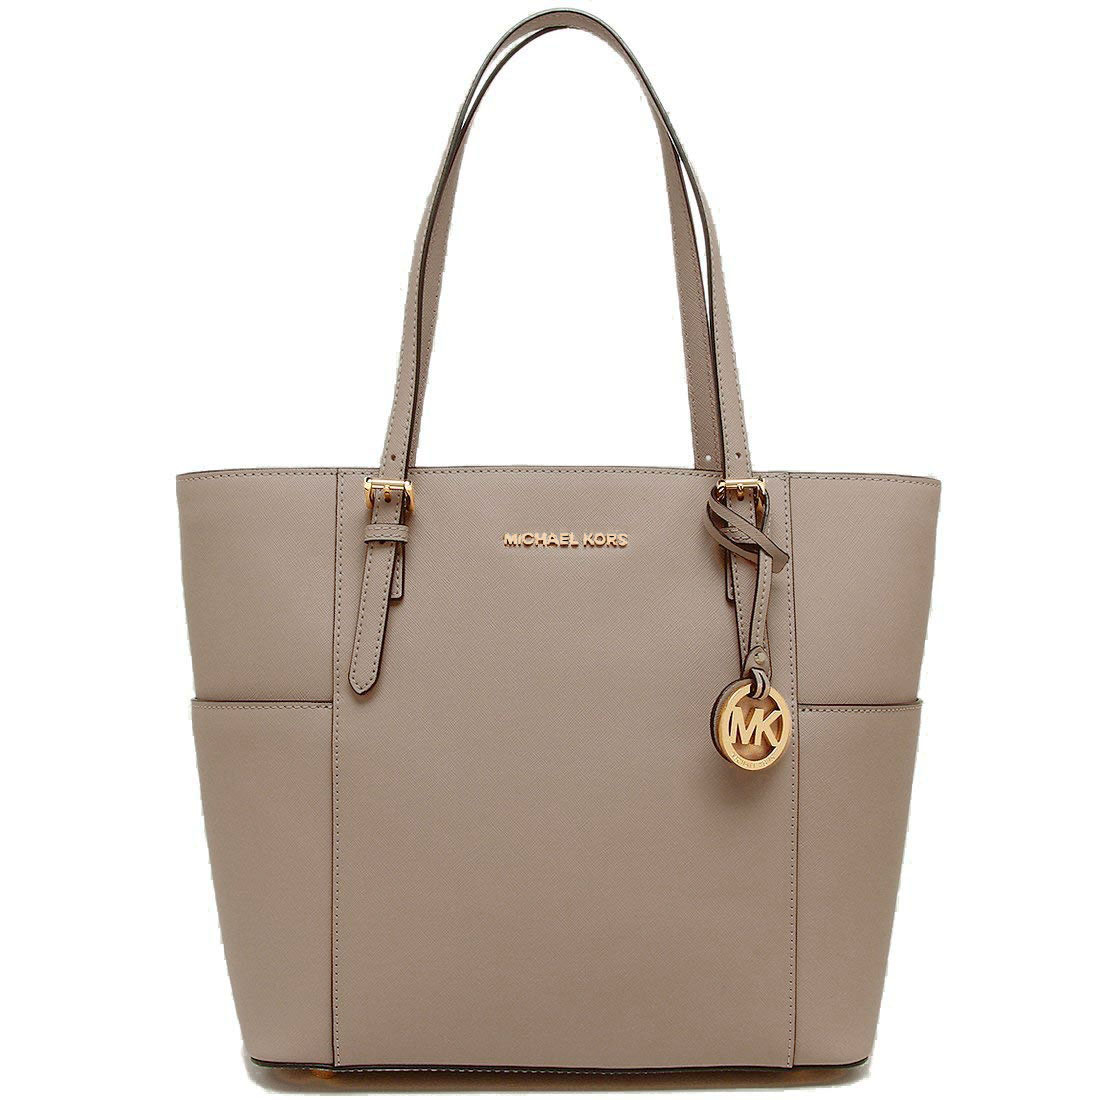 4e221bca910e Michael Kors Jet Set Travel Large Leather Tote Truffle Brown Grey #  30T6GTVT3L